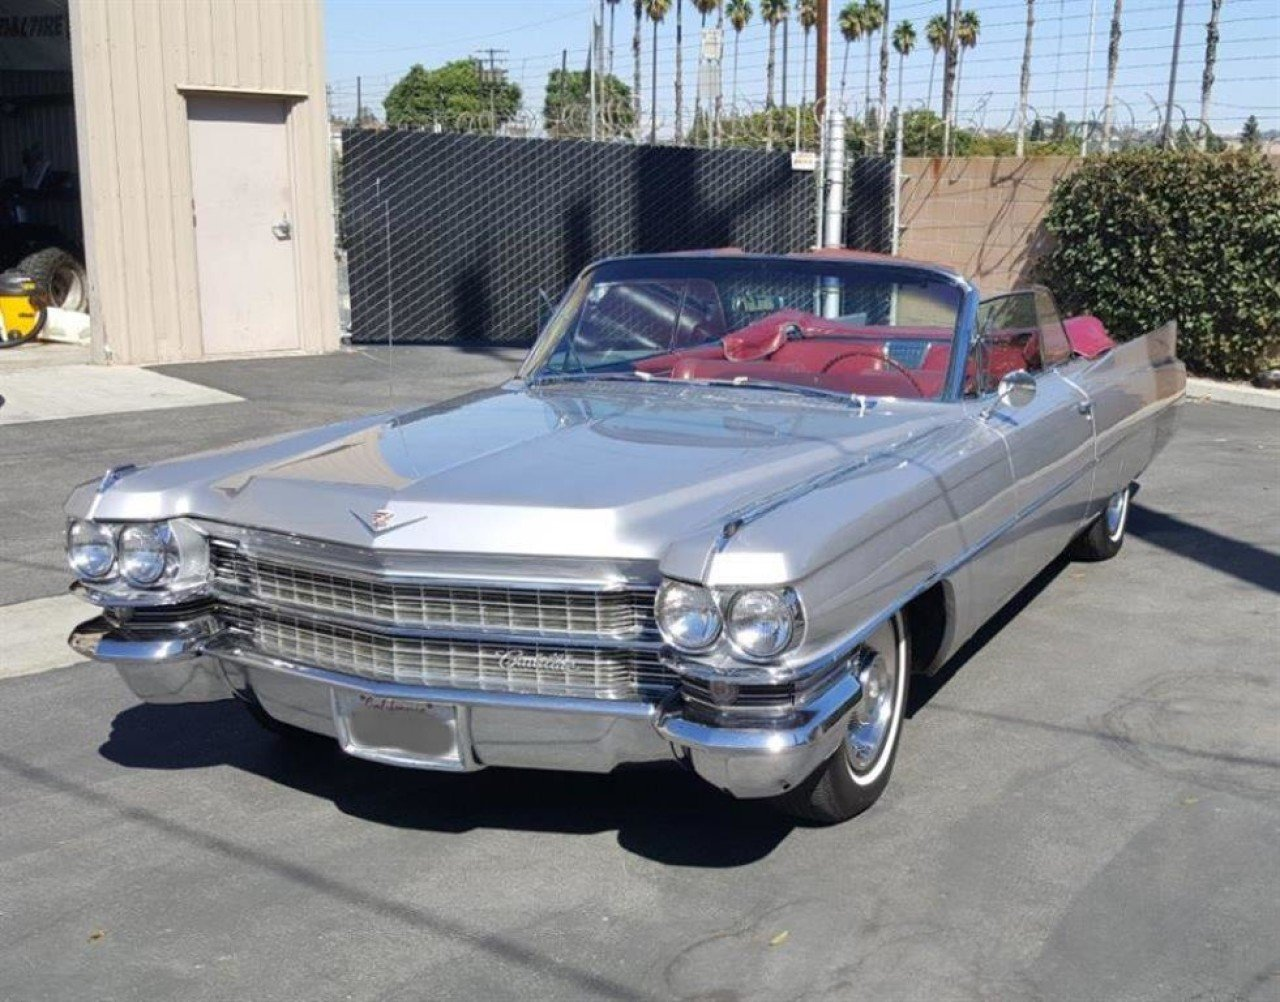 Classic Cars For Sale California Usa: 1963 Cadillac Other Cadillac Models For Sale Near Orange